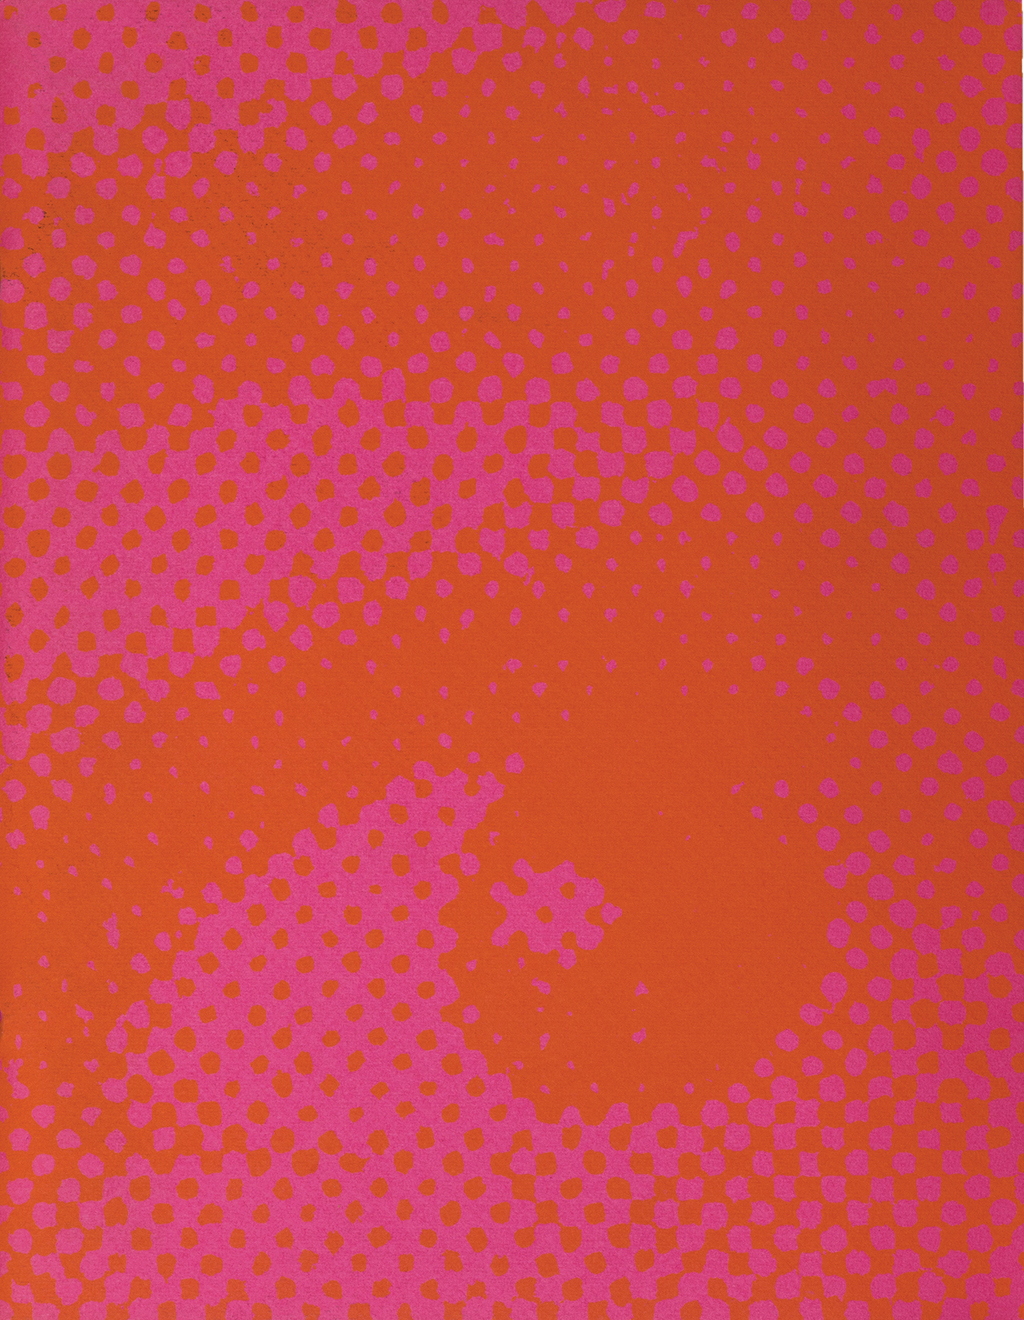 the gestalt assault cover (Strathmore Paper Co., 1970). Design by Ken Kuenster. Photograph by Ariel Smullen.